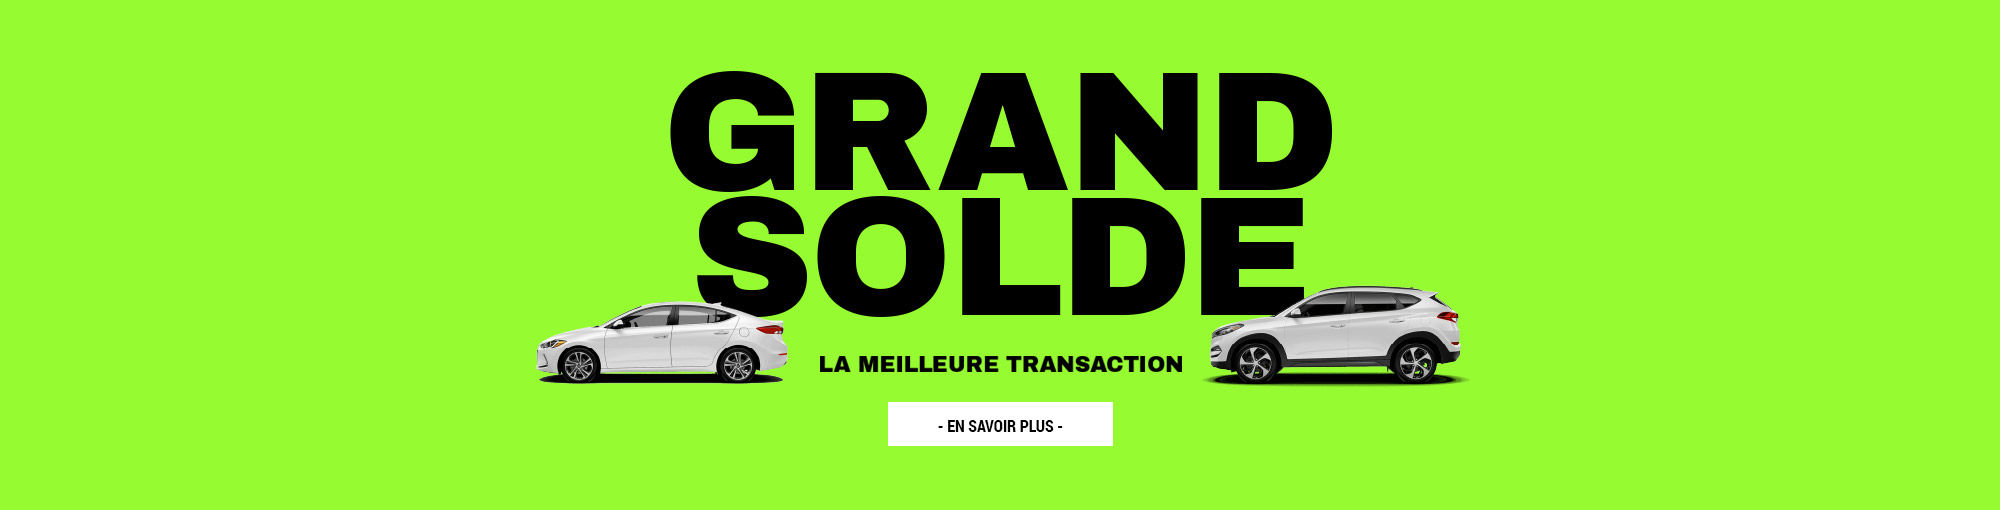 GRAND SOLDE ÉTÉ 2018 GROUPE VINCENT header Hyundai Shawinigan_4